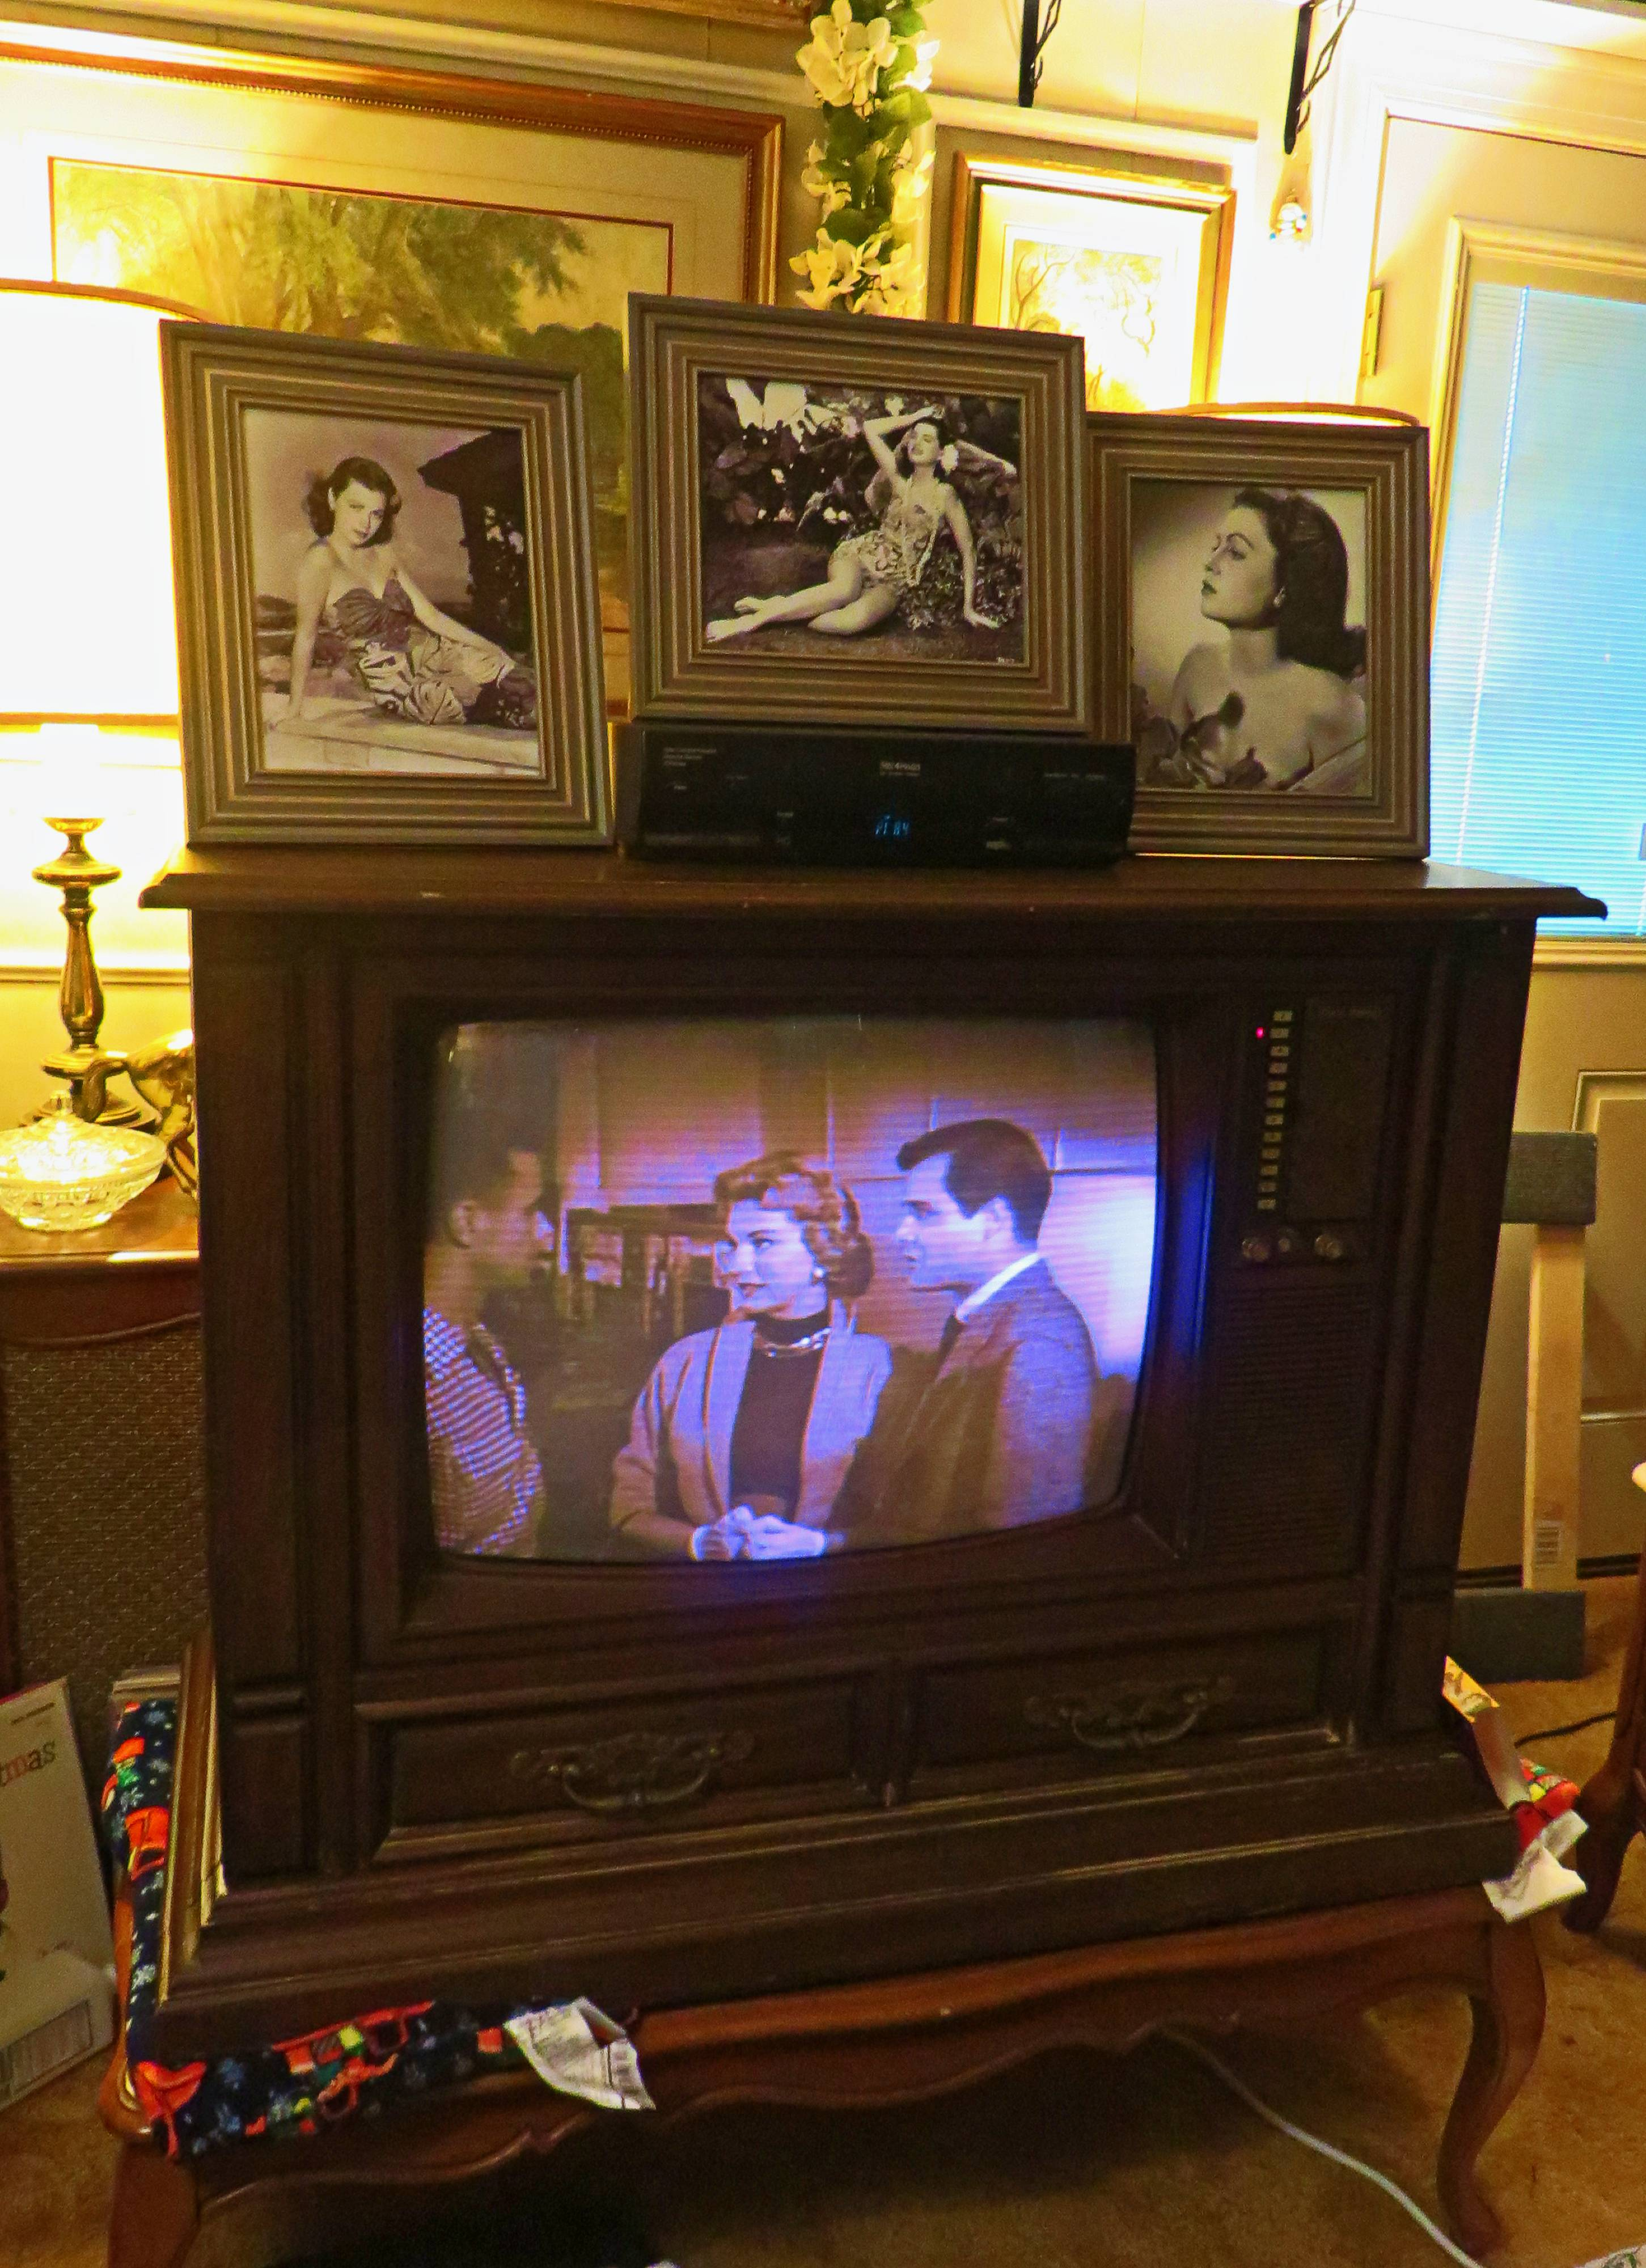 1980 Curtis Mathes Color Television Model G550 Chassis C81-7 Medium Pecan,